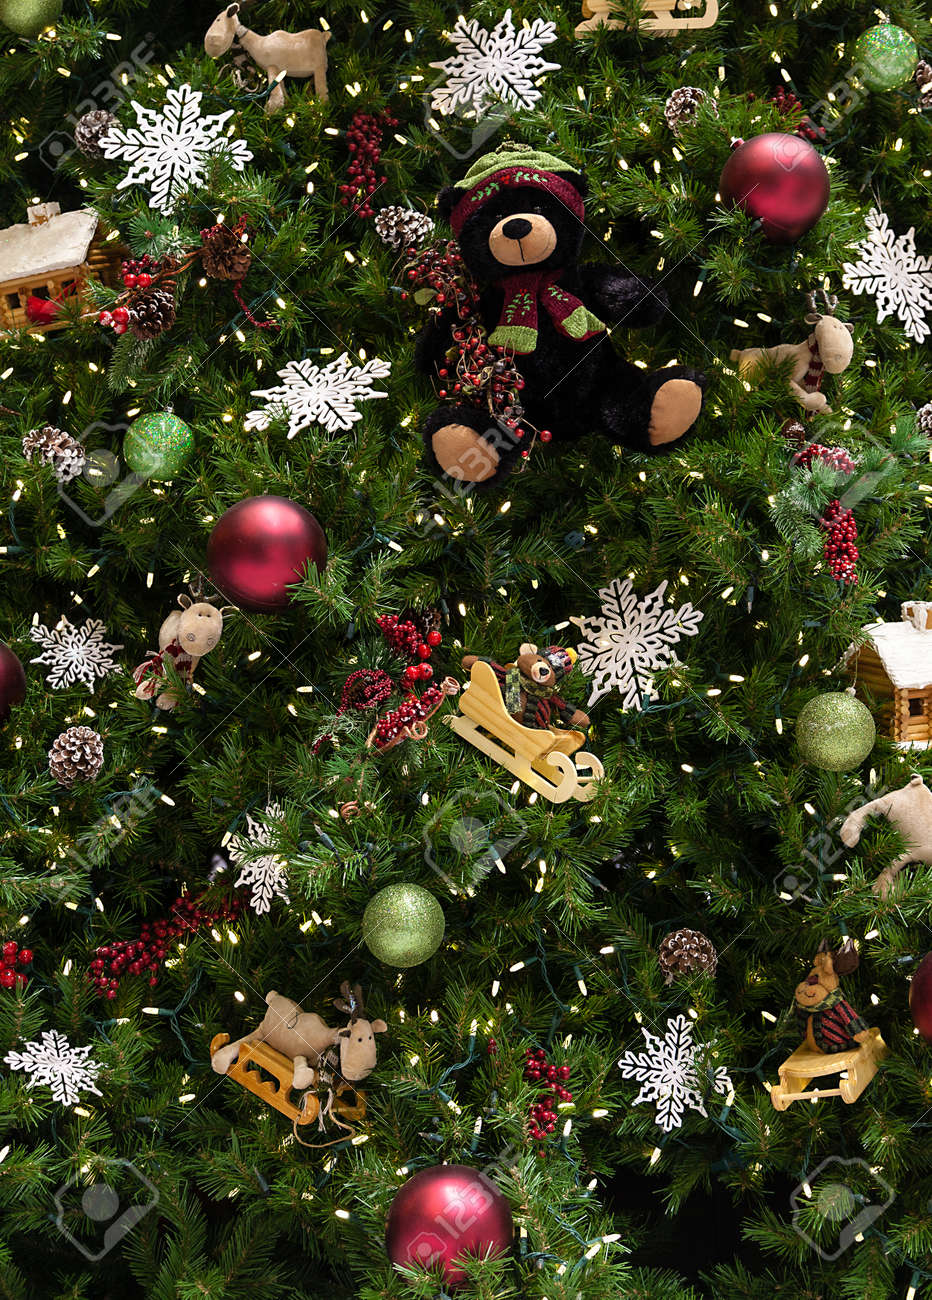 Close Up Of Christmas Tree With Ornaments Of Baubles Snowflakes